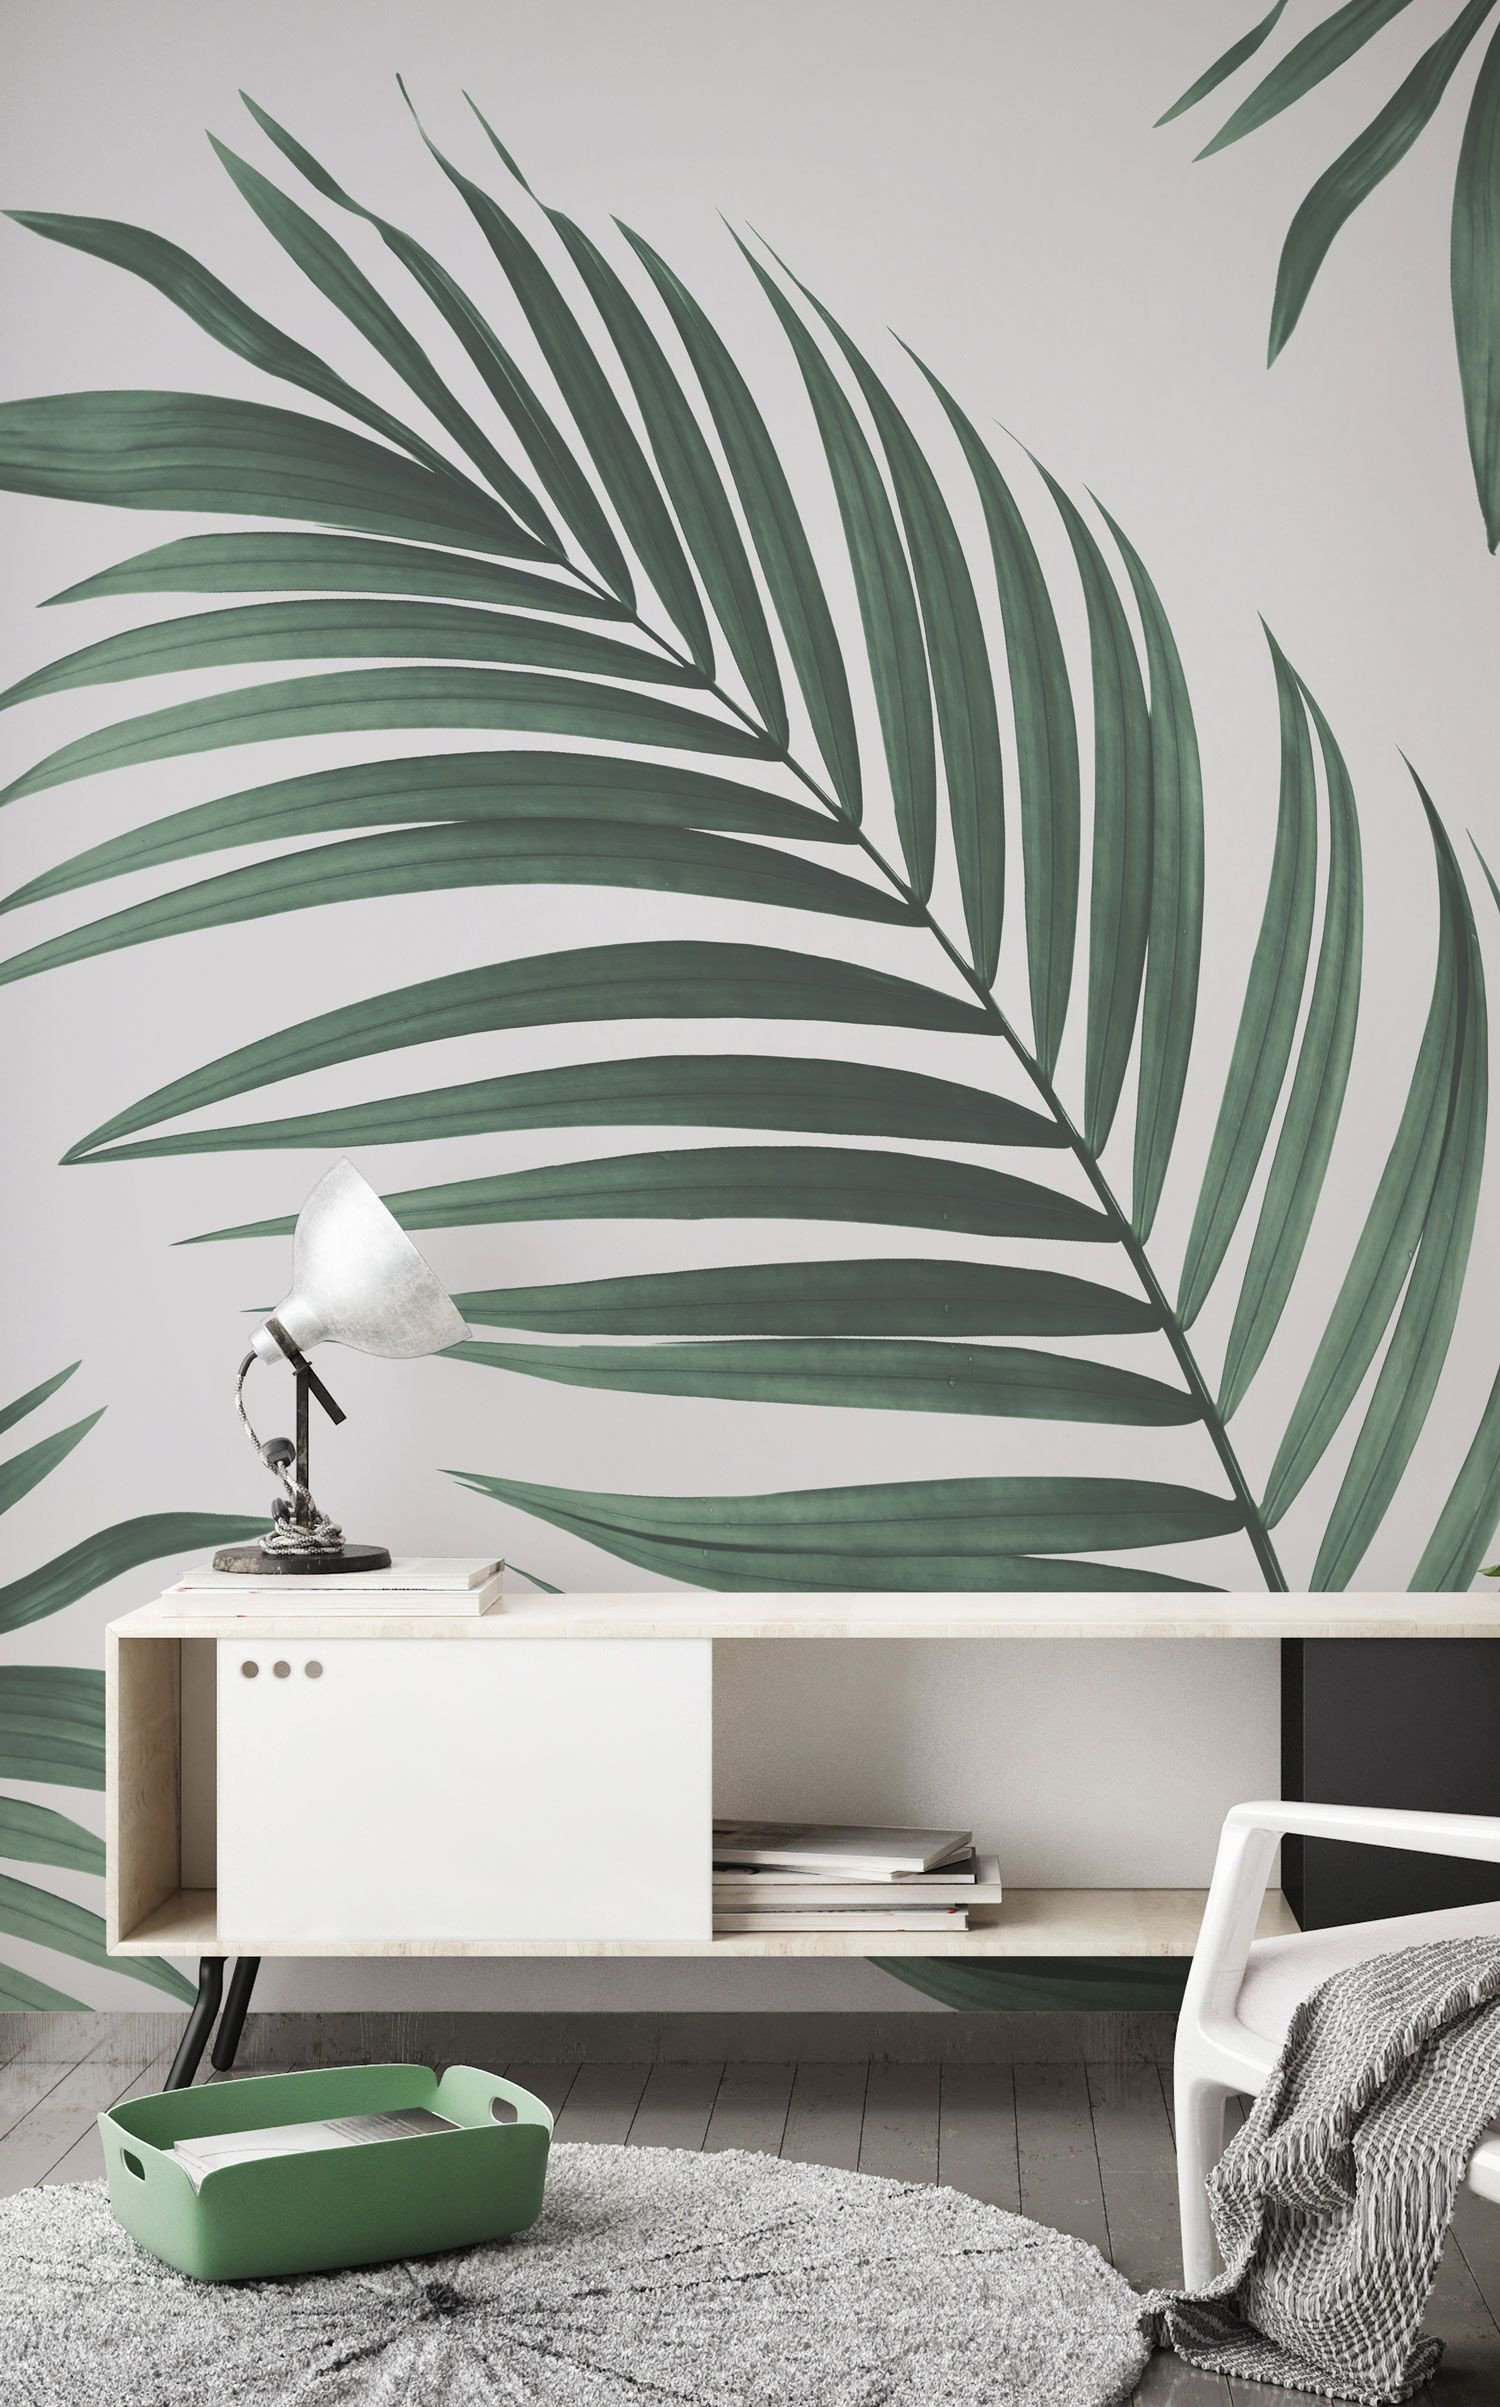 Wall Mural Ideas for Bedroom Beautiful Tropical Palm Wall Mural